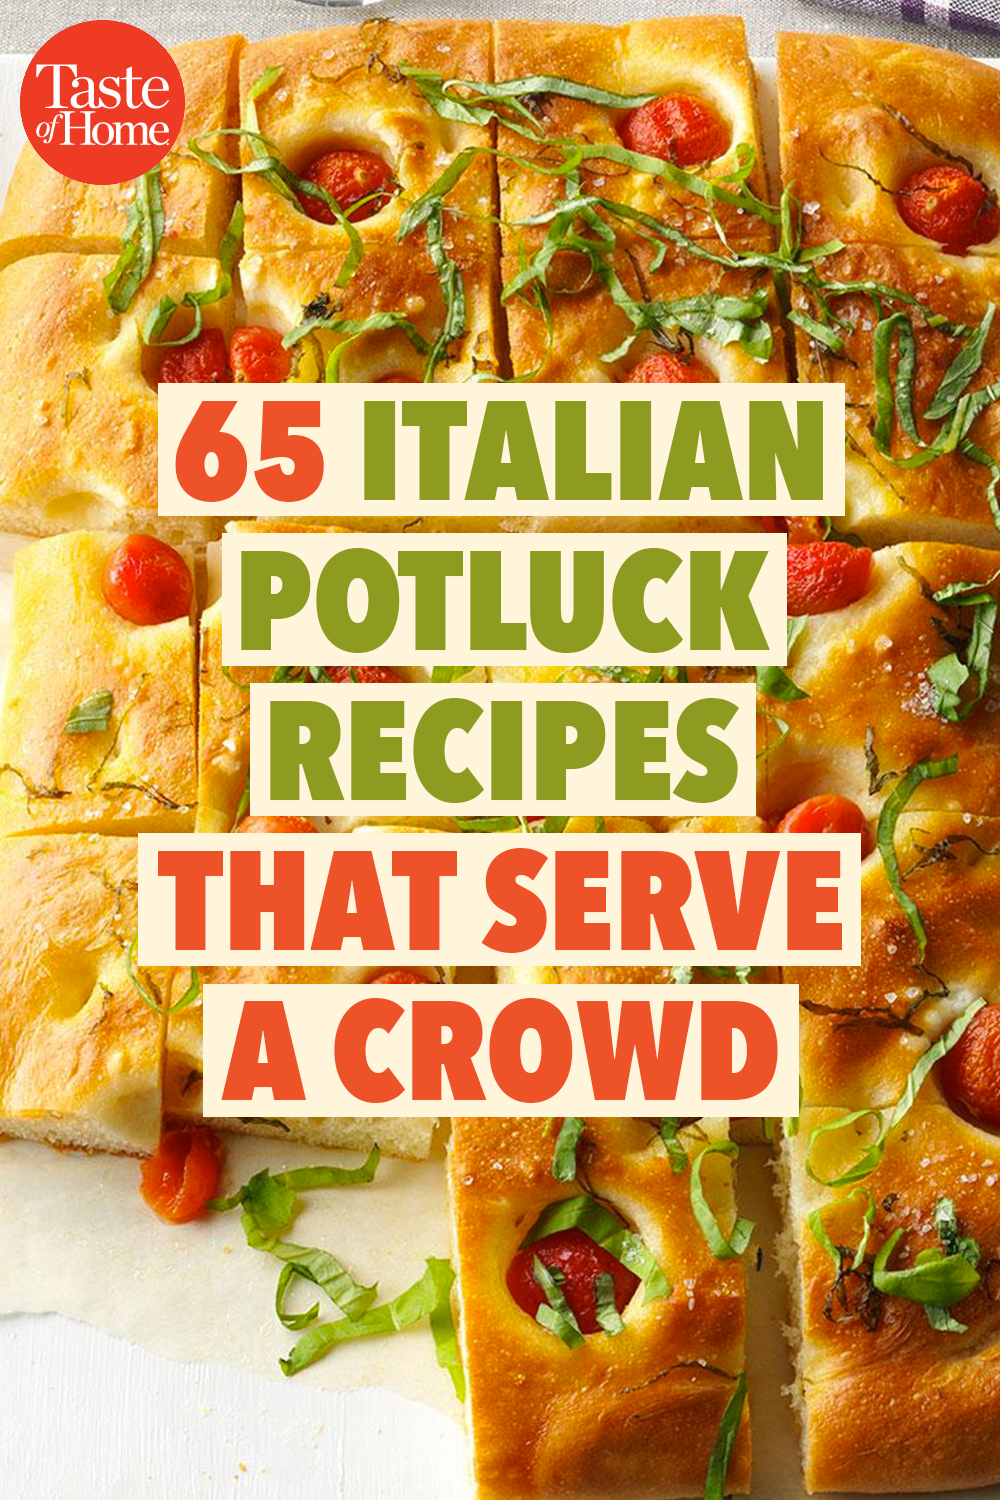 65 Italian Potluck Recipes That Serve a Crowd